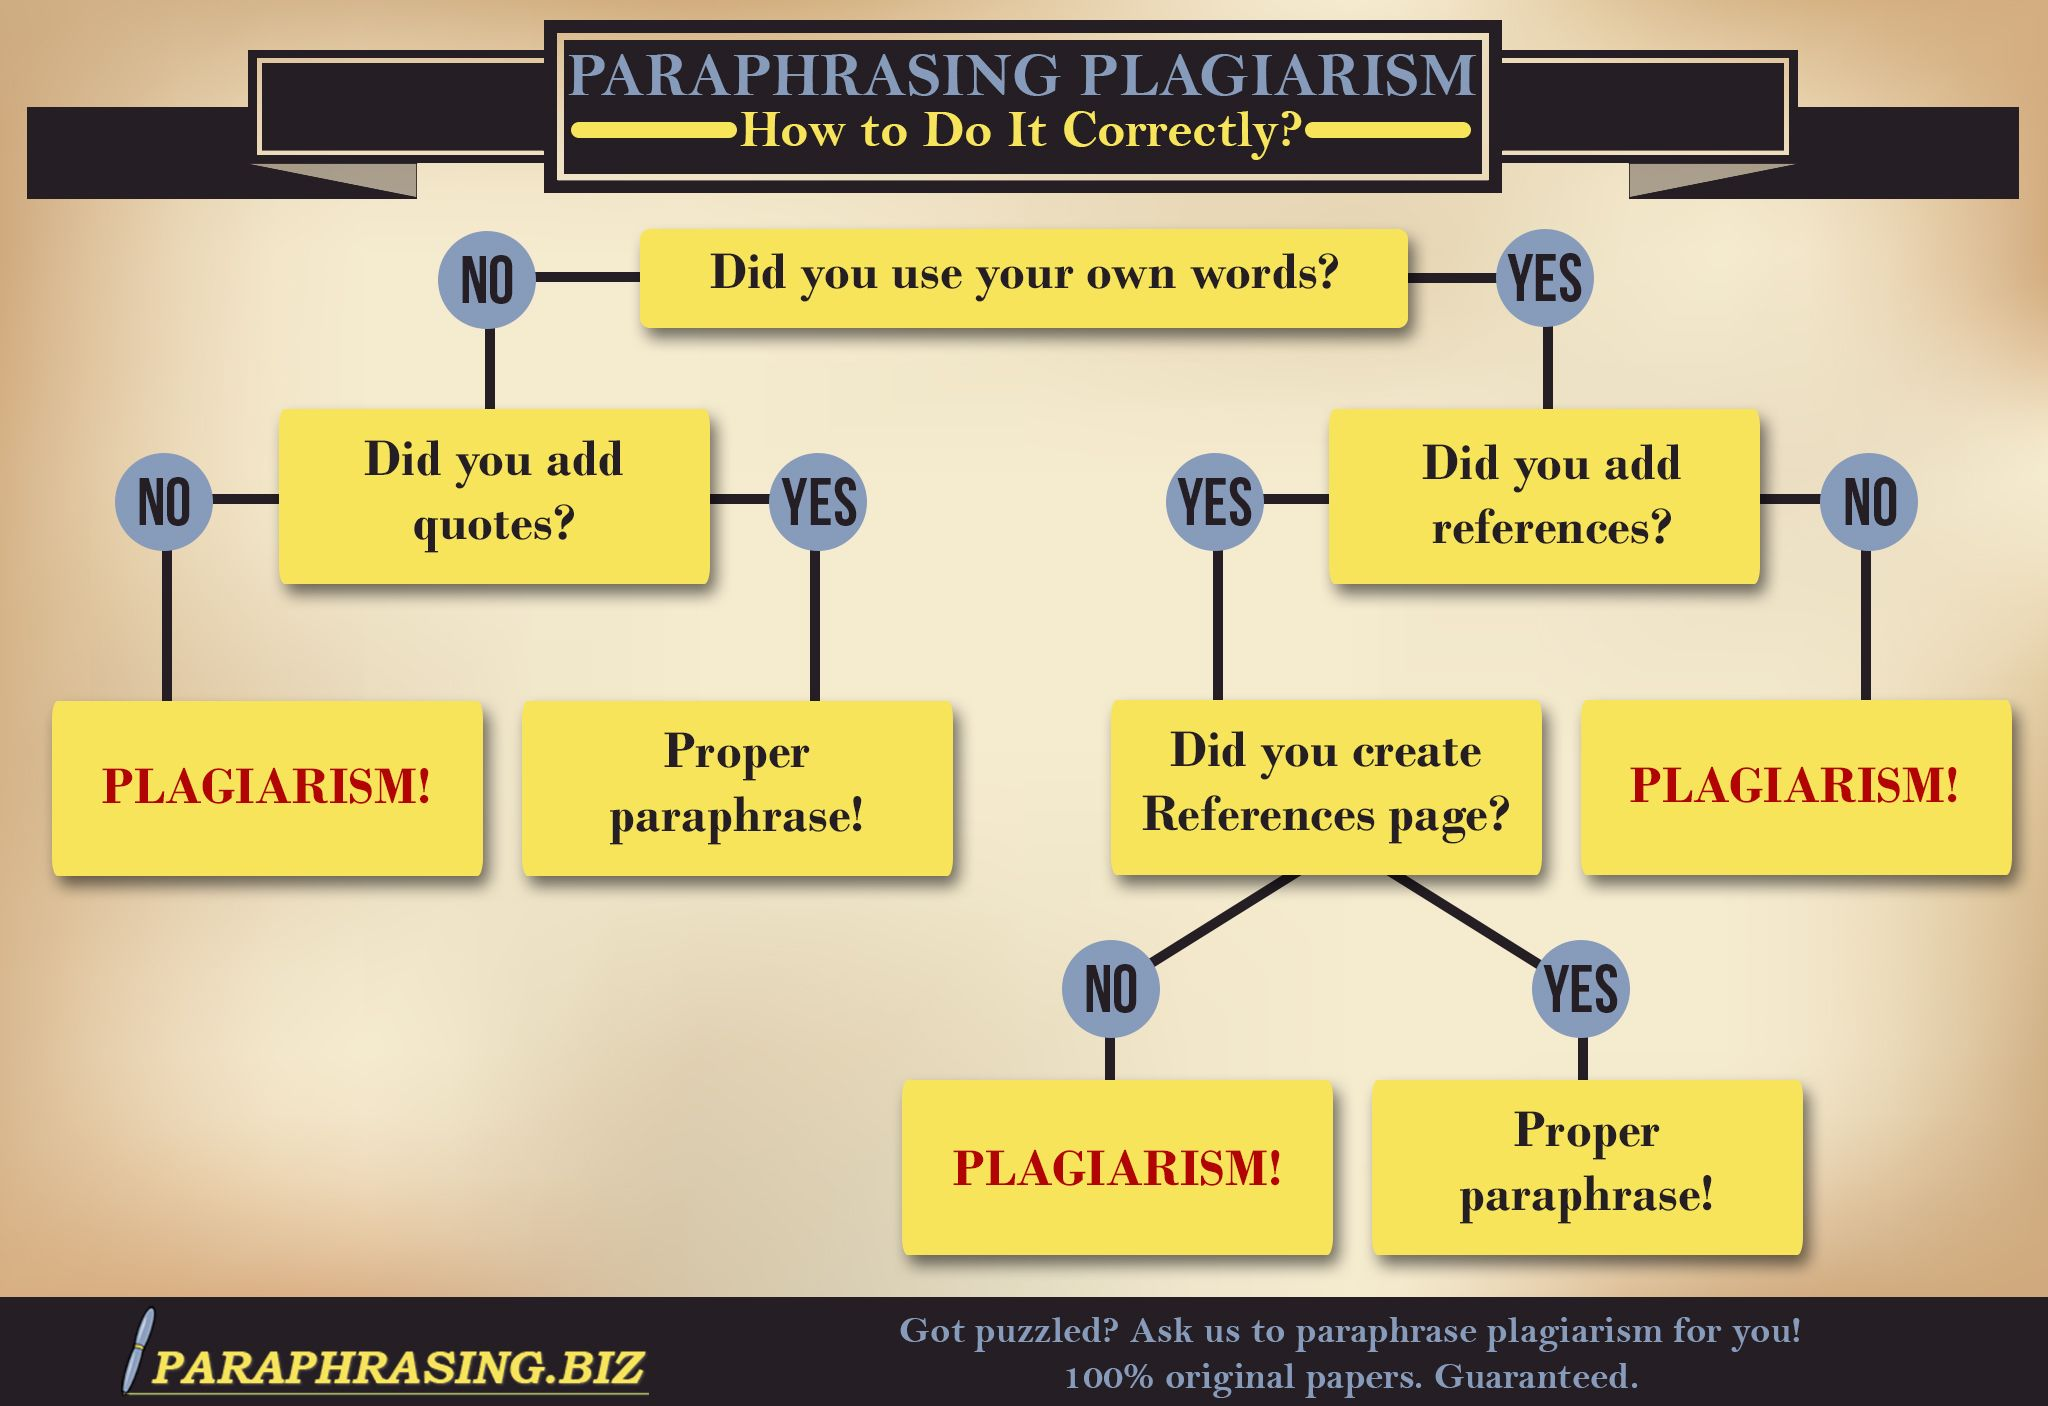 Paraphrasing Content I Something That Can Be Very Tediou And Time Consuming A Well Difficult But It S Somet Plagiarism Paraphrase Science Technology When